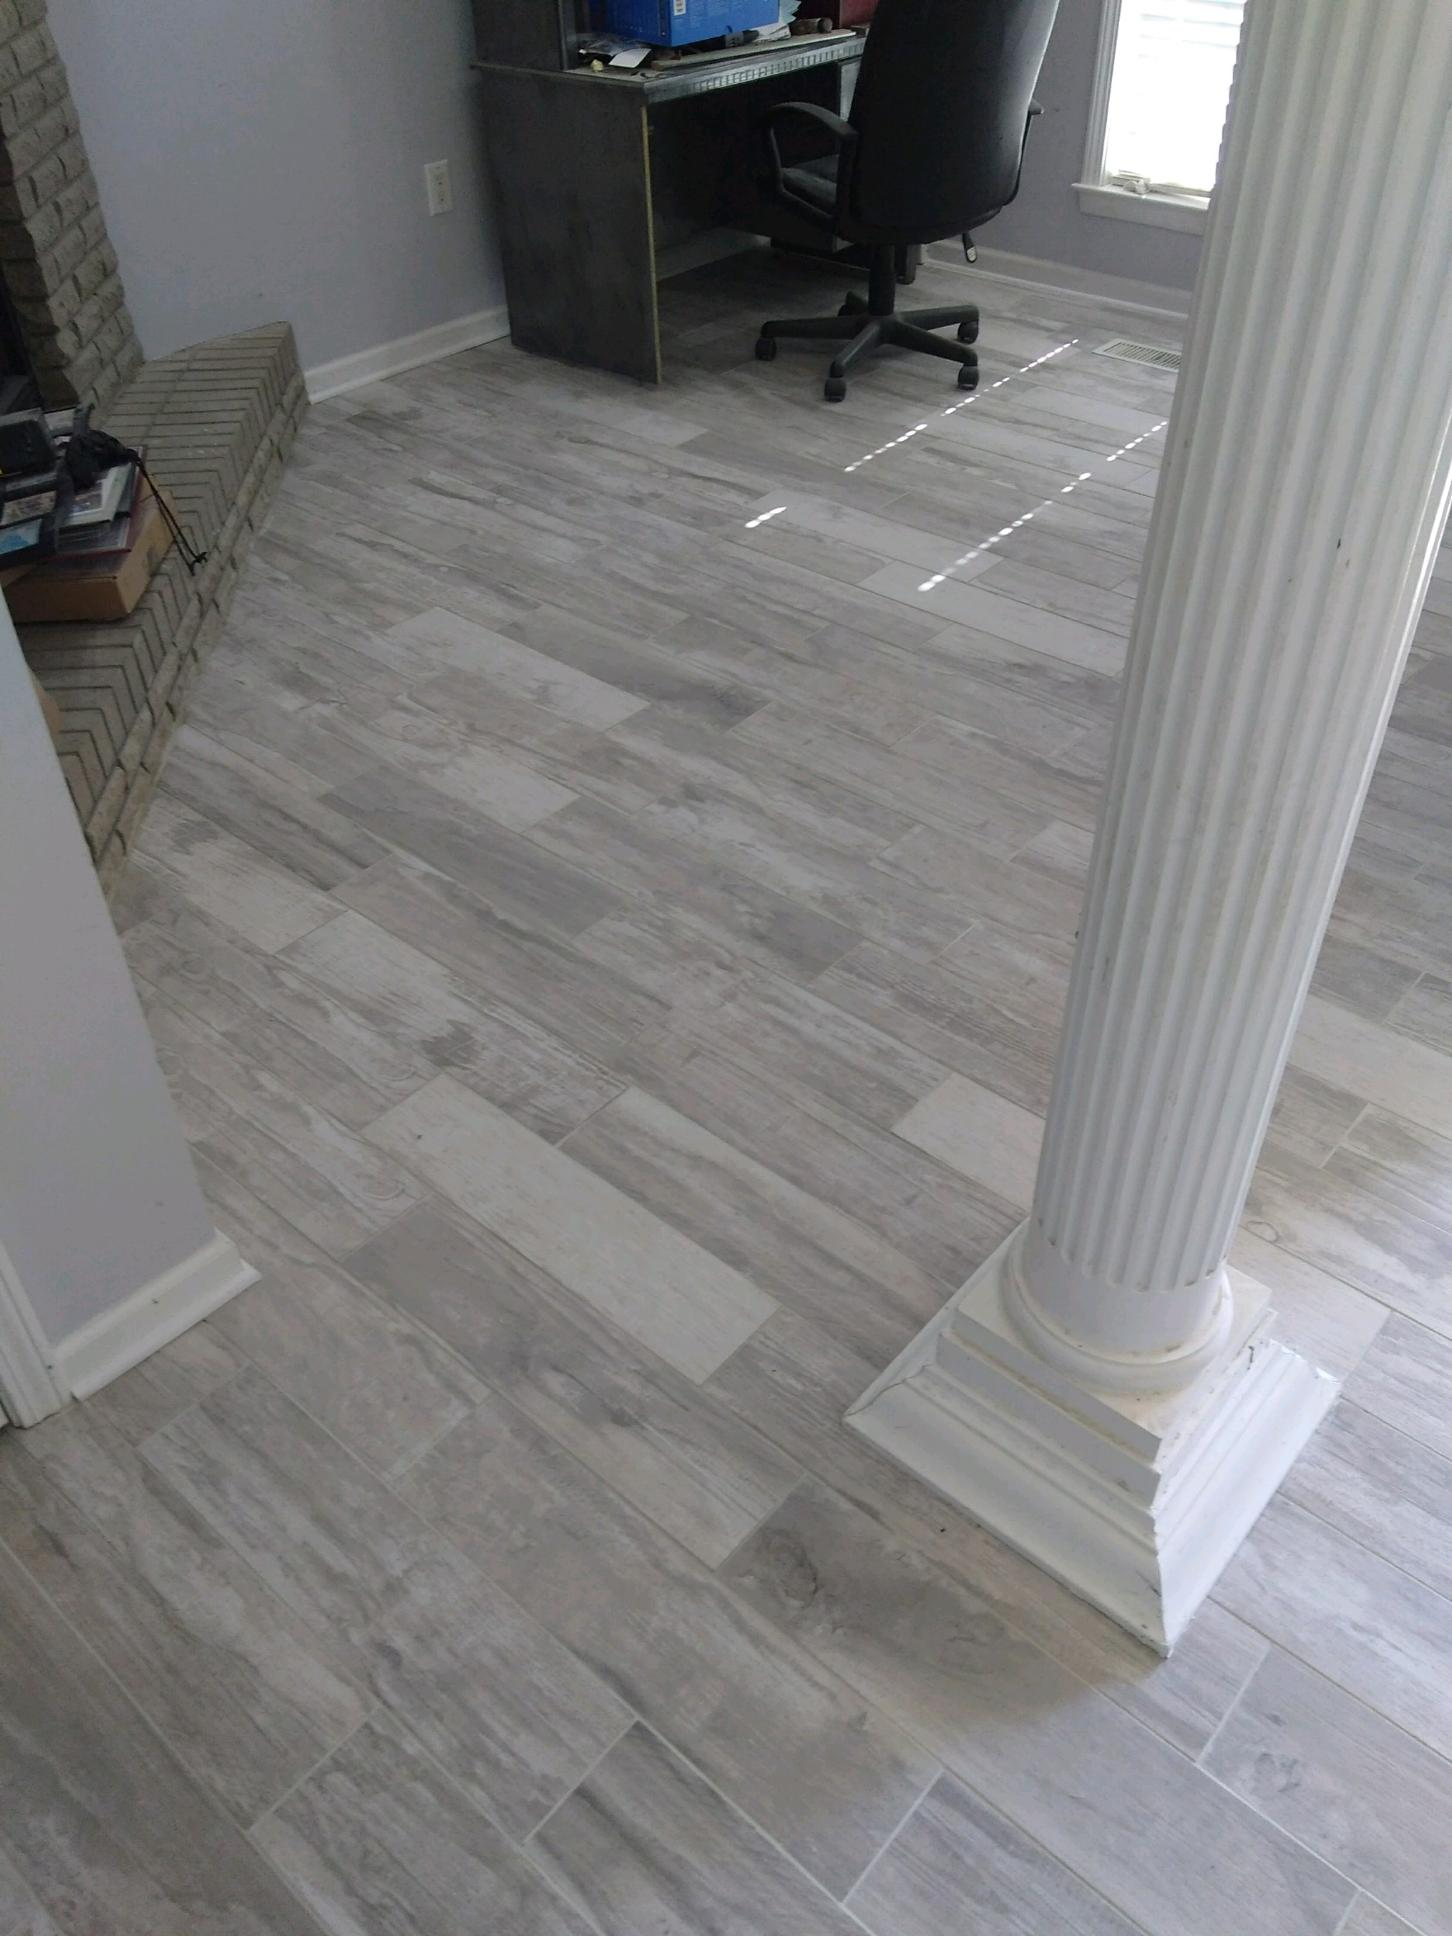 Wood Like Tile in Great Room